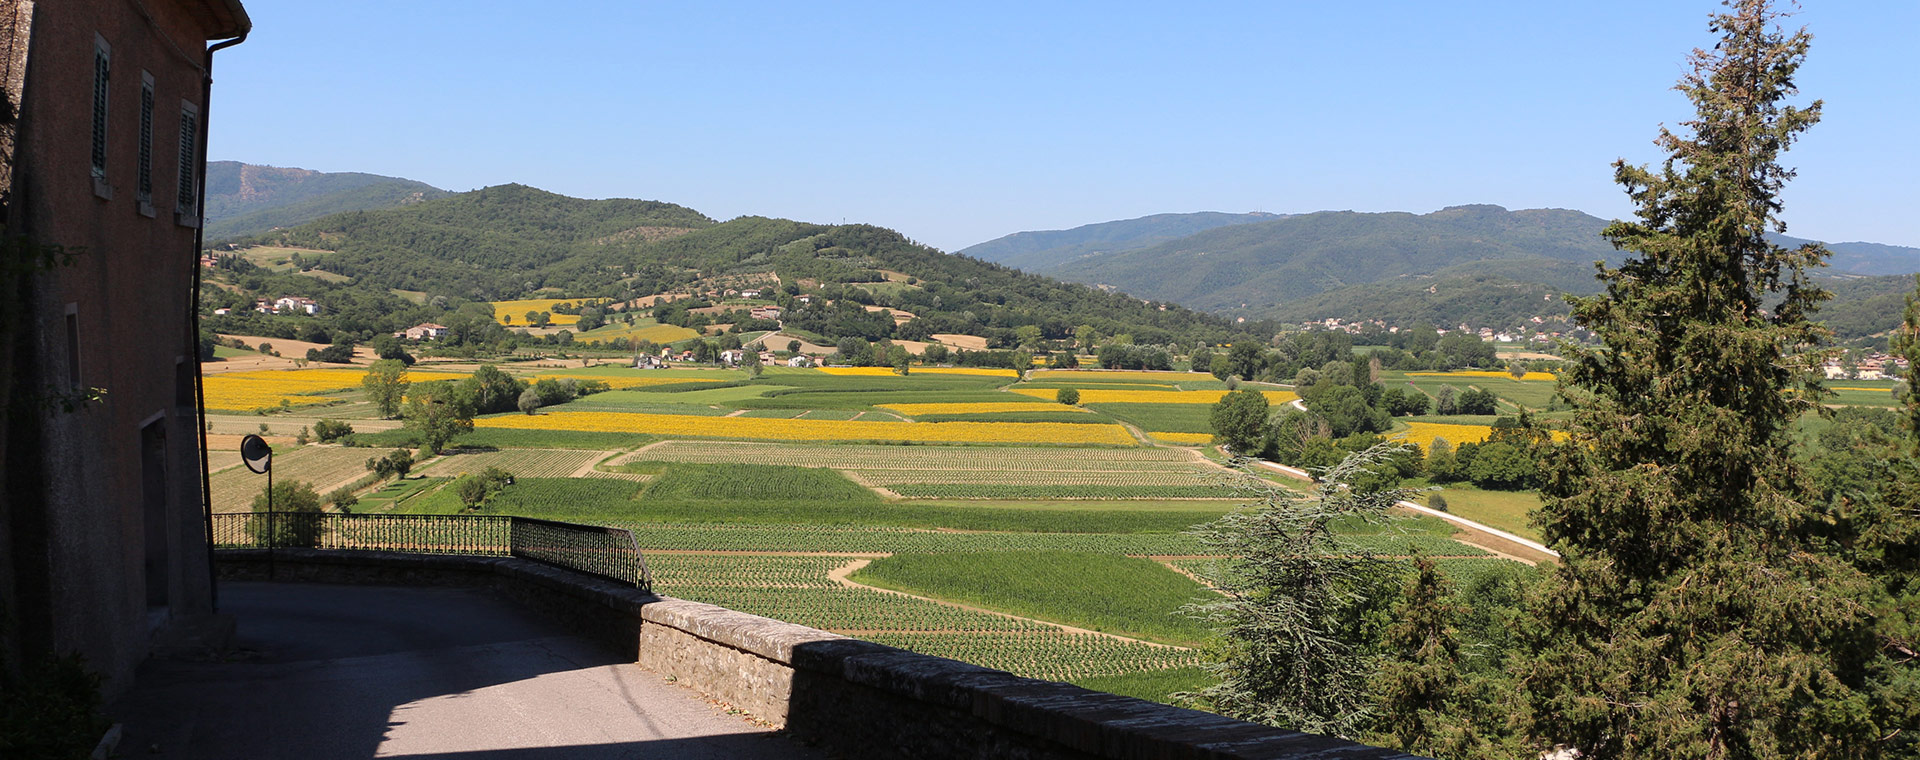 Villas for sale in tuscan countryside